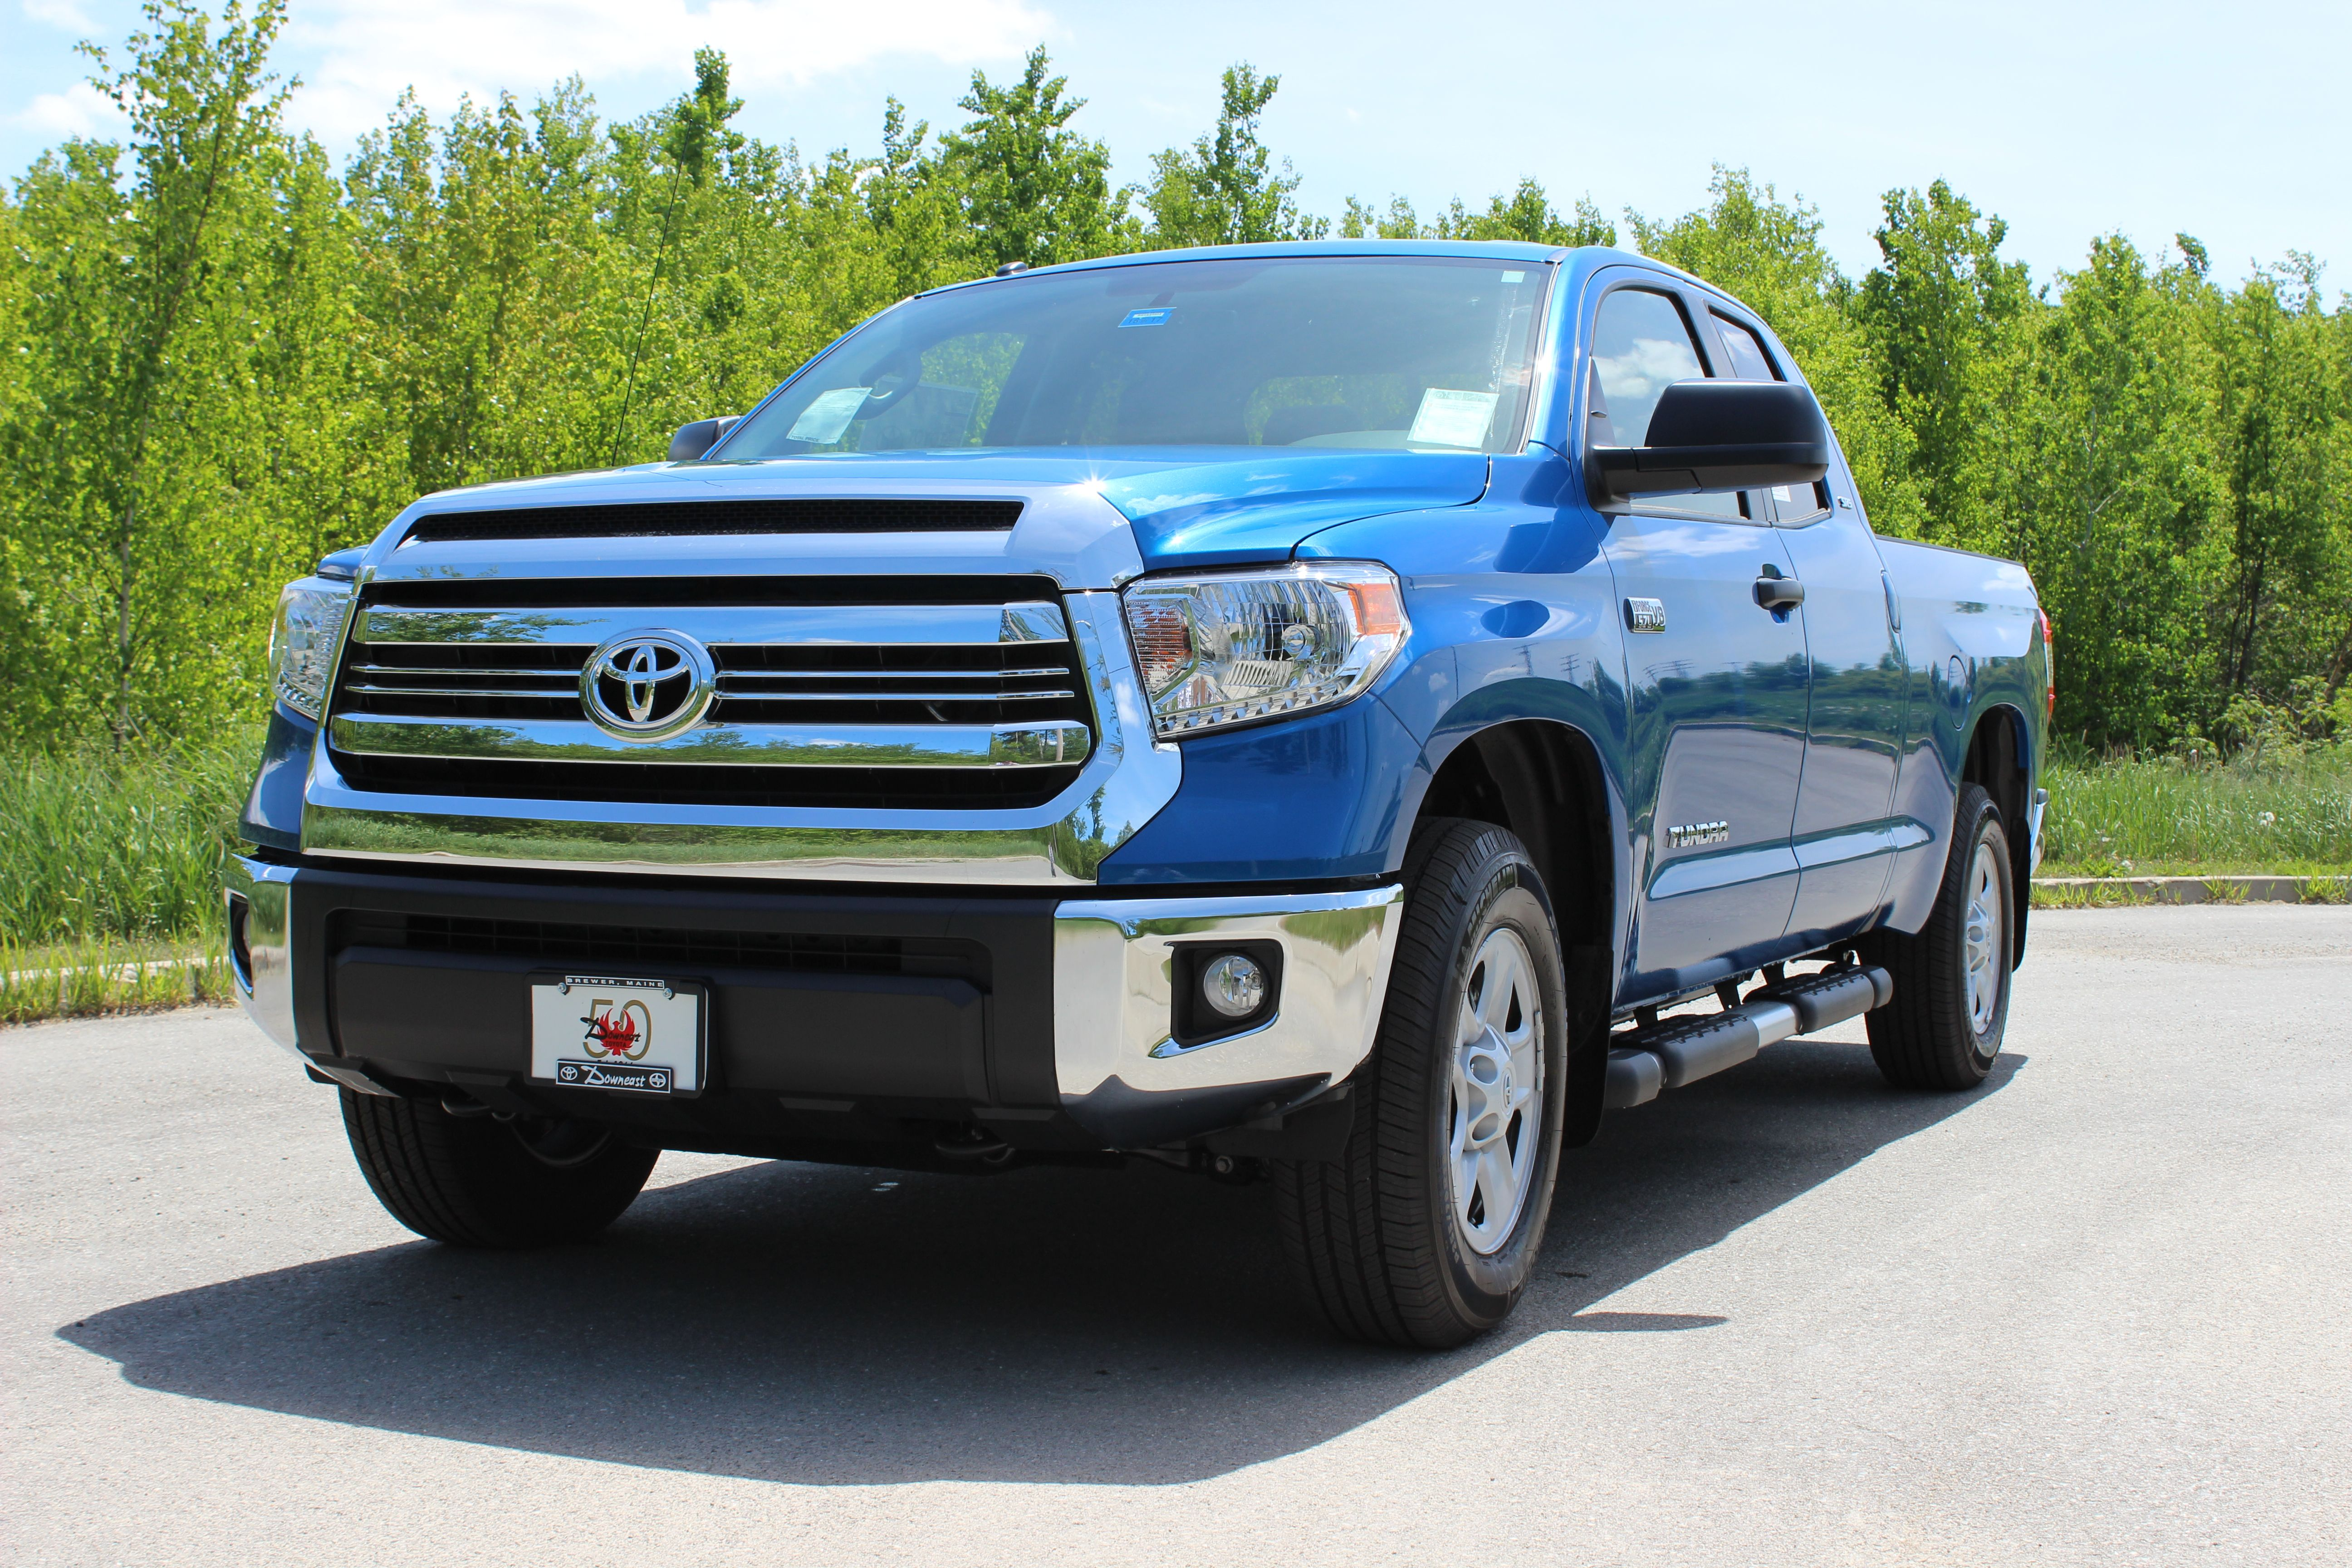 2018 toyota tundra trd sport front grille in garage doorway toyota tundra pinterest toyota tundra trd tundra trd and toyota tundra